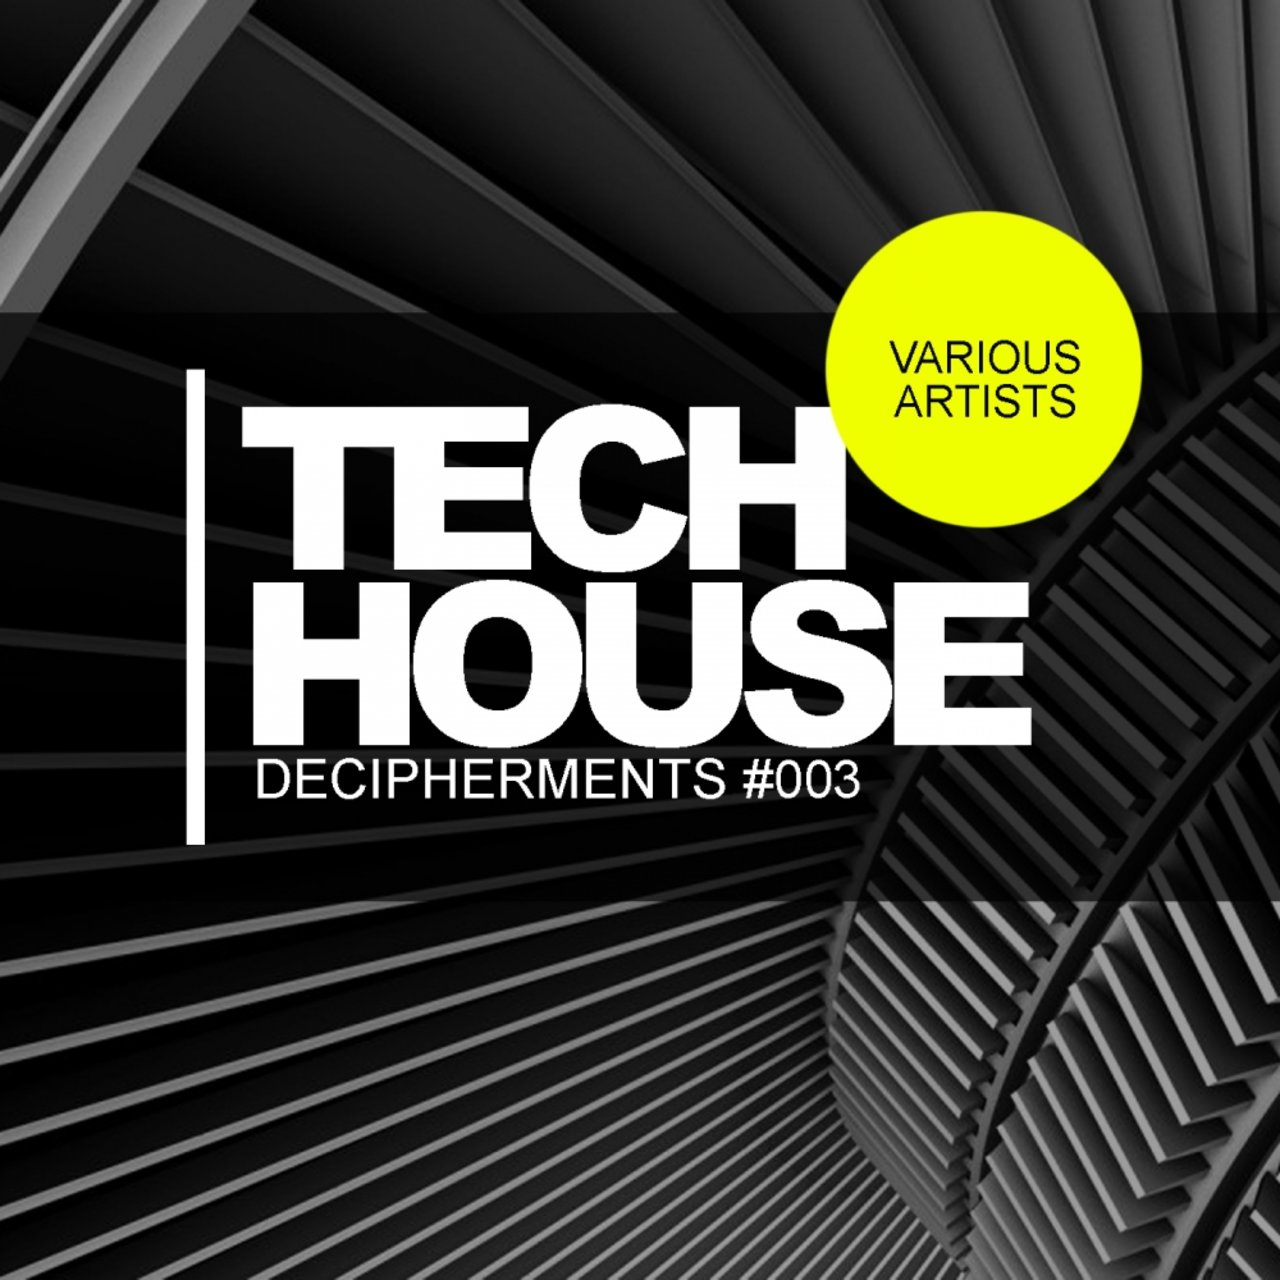 Tech House Decipherments #003